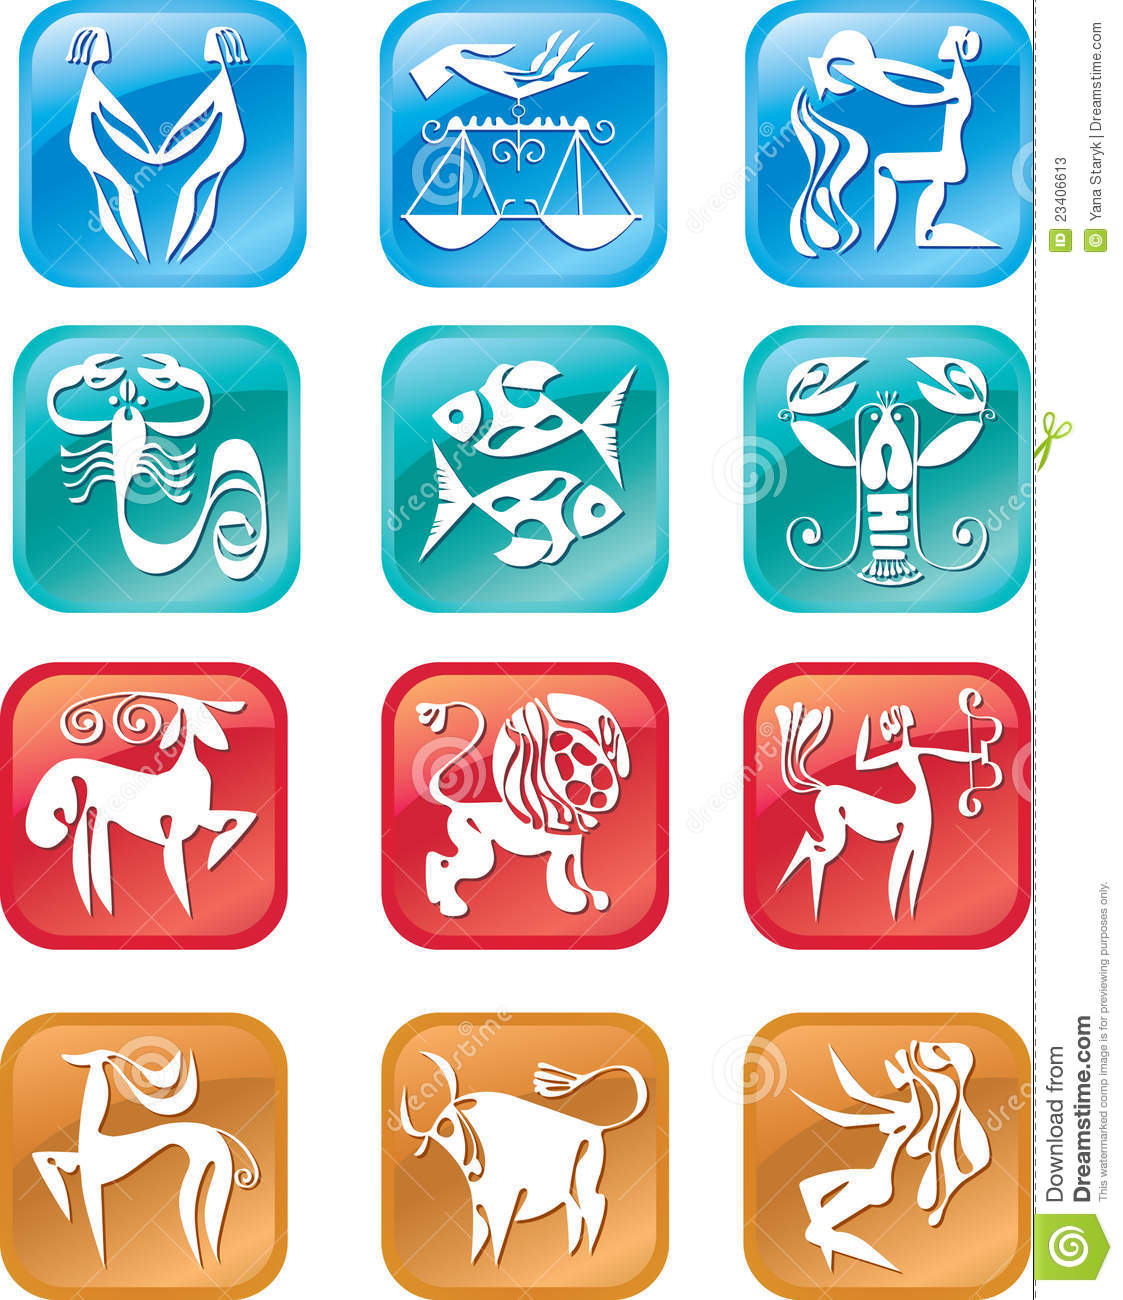 Horoscope Zodiac Signs Stock Photos - Image: 23406613